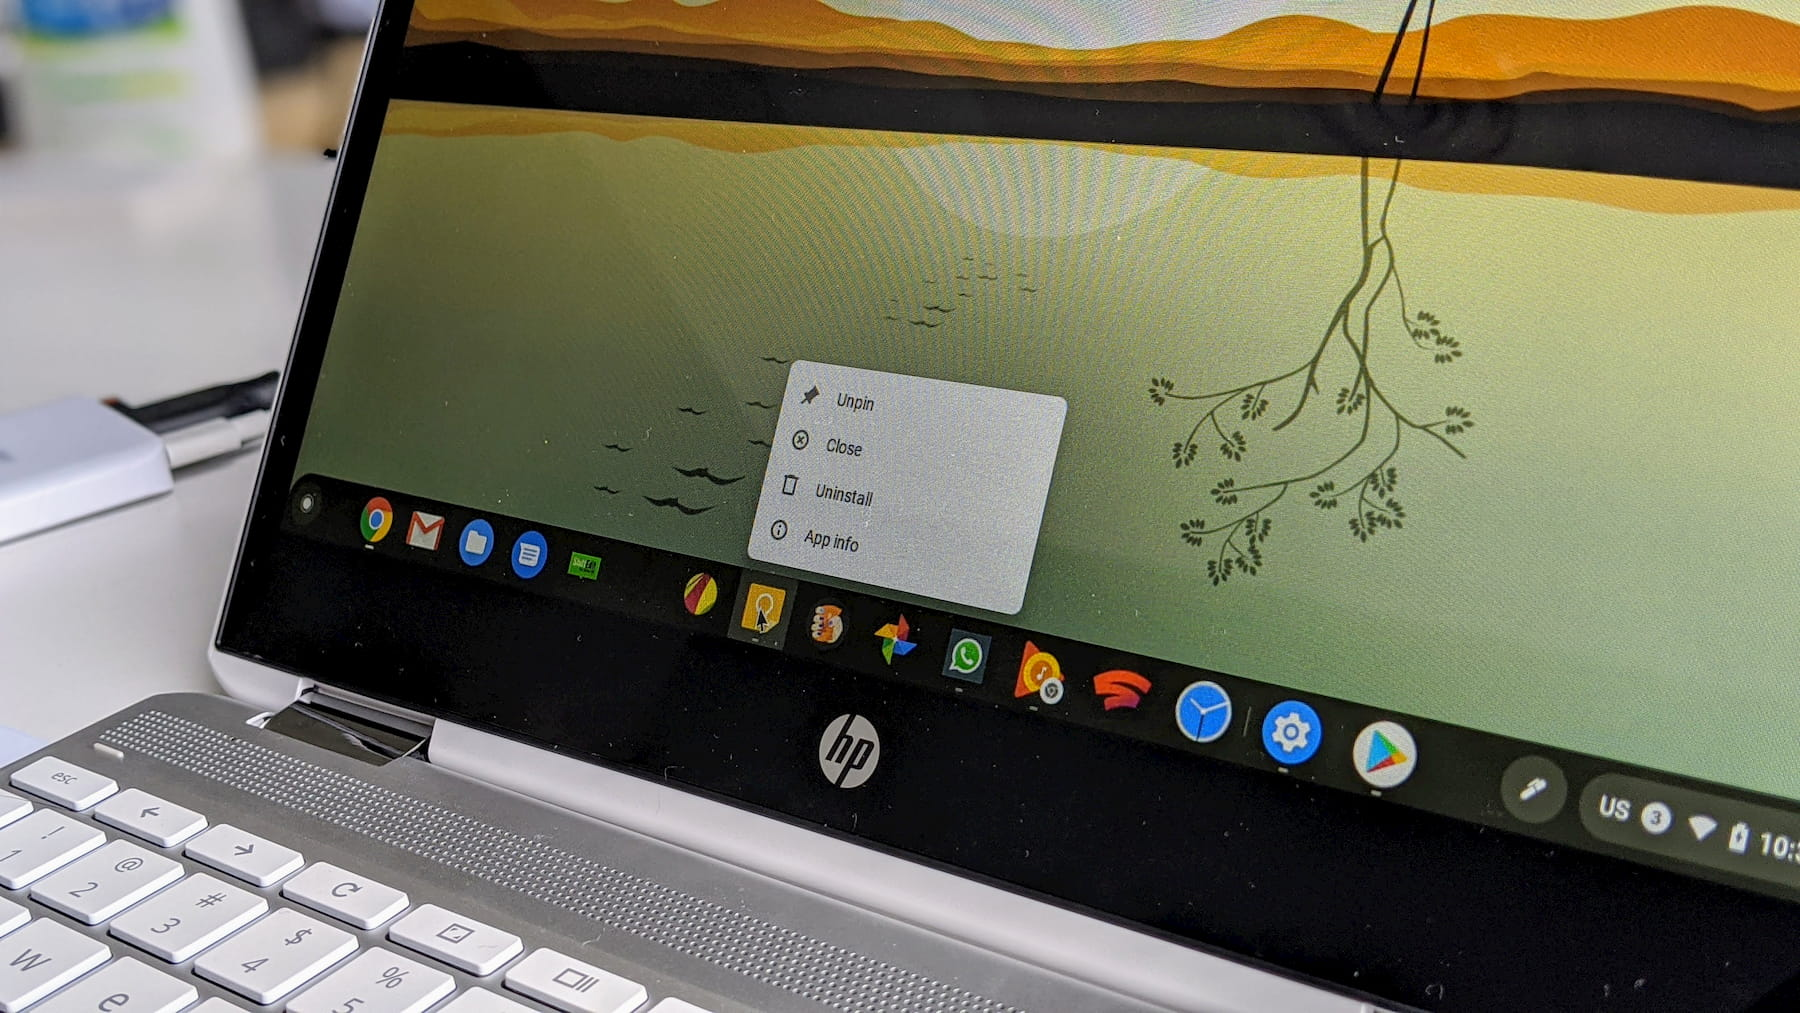 This upcoming feature for Chromebooks will make app removal much more seamless